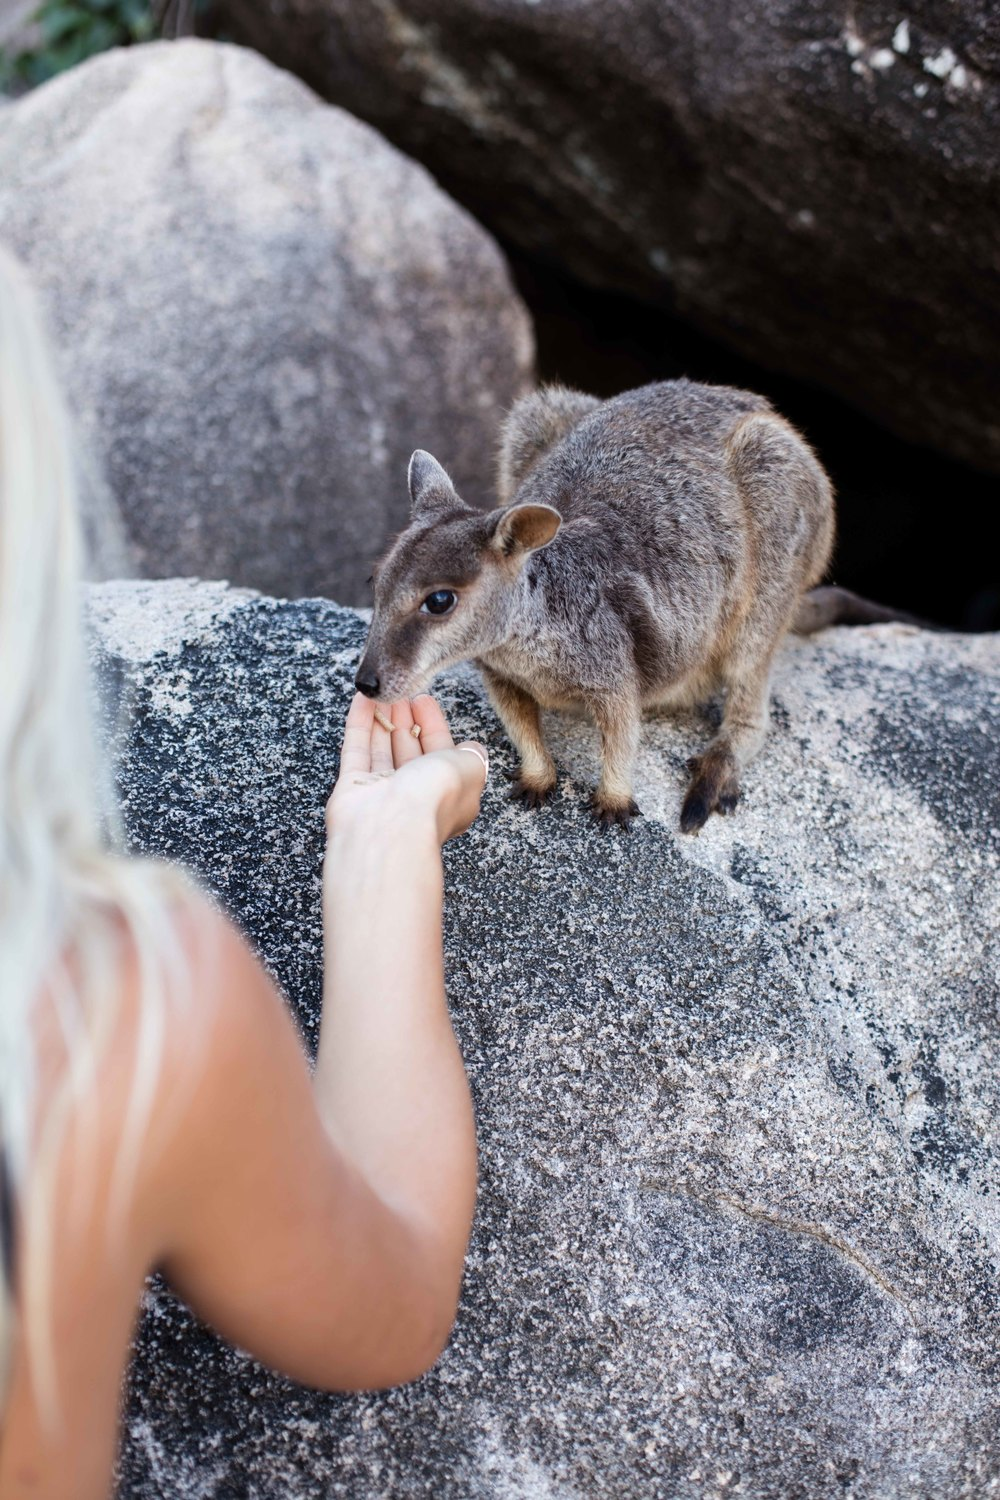 Feeding the local Rock Wallabies